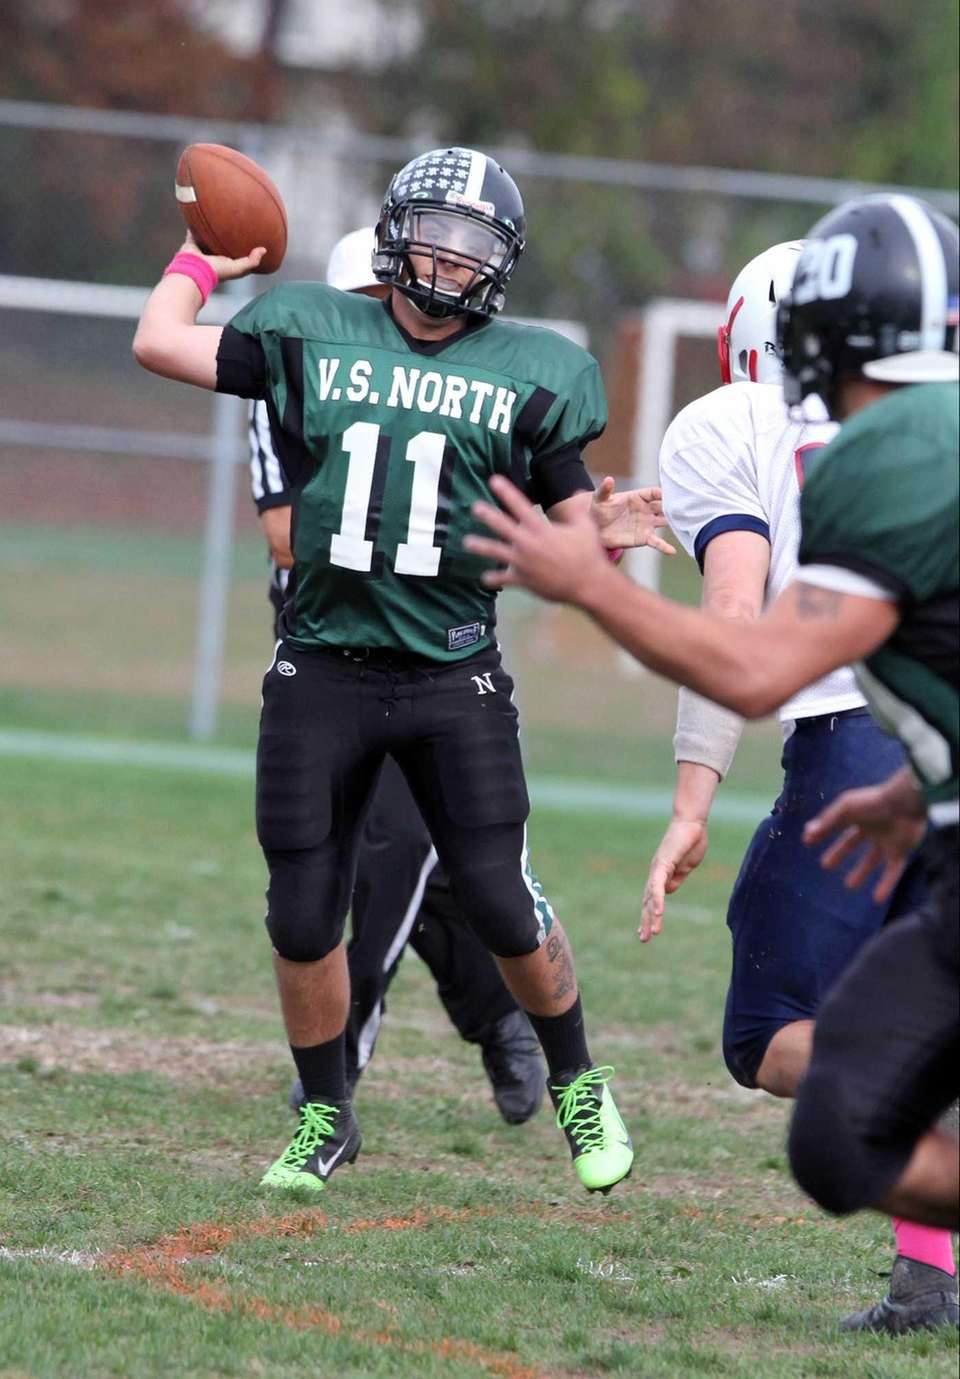 Valley Stream North's Anthony Martelli looks to throw